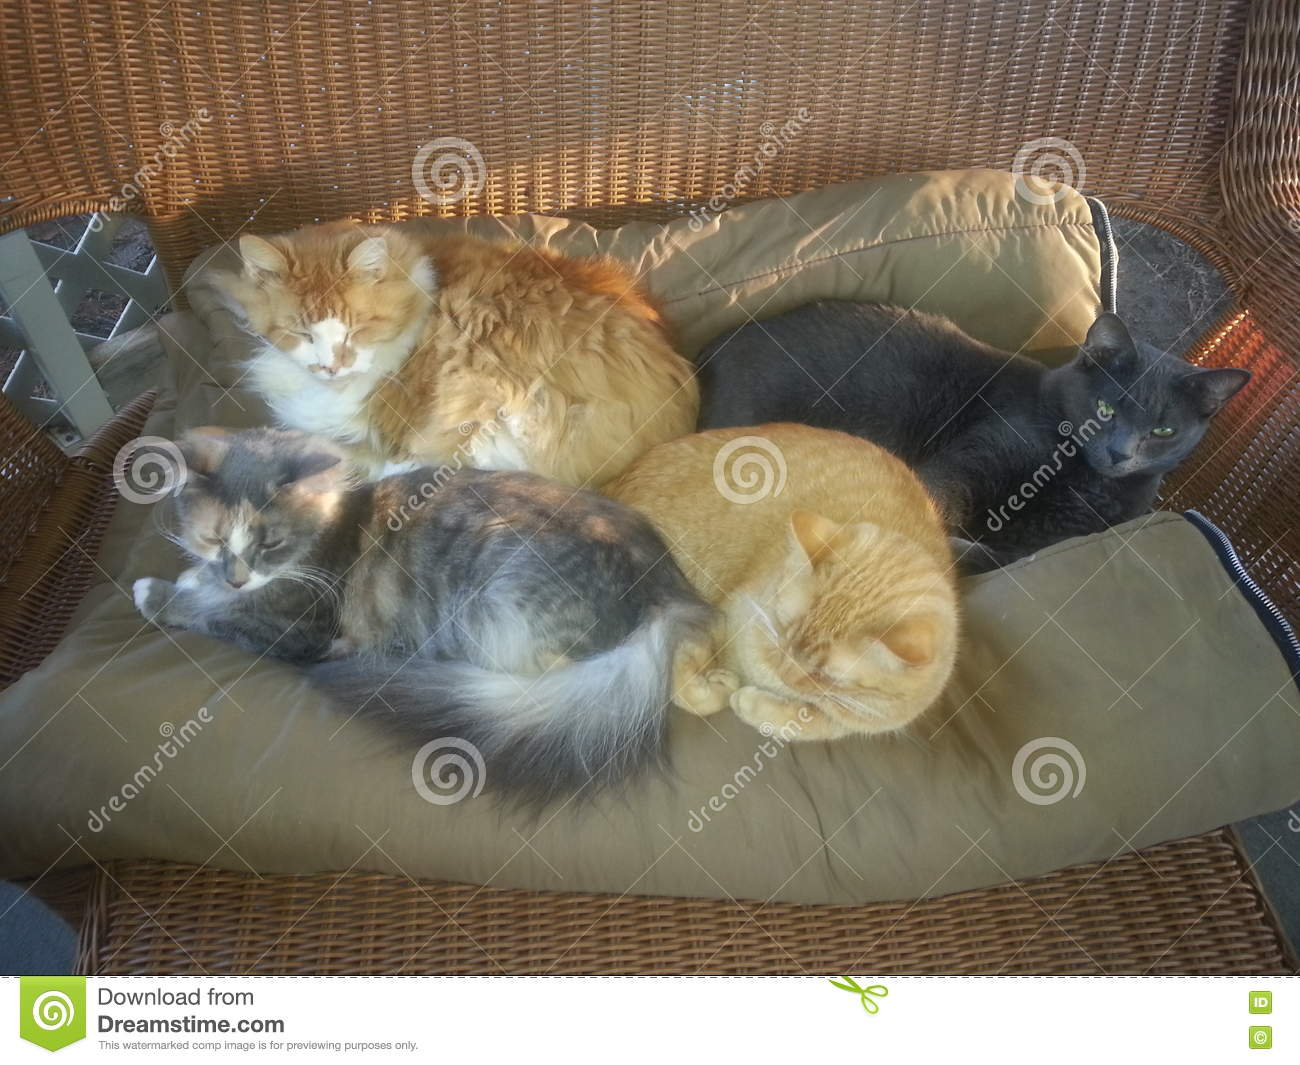 Four Cats Snuggling On Blanket Stock Image - Image of